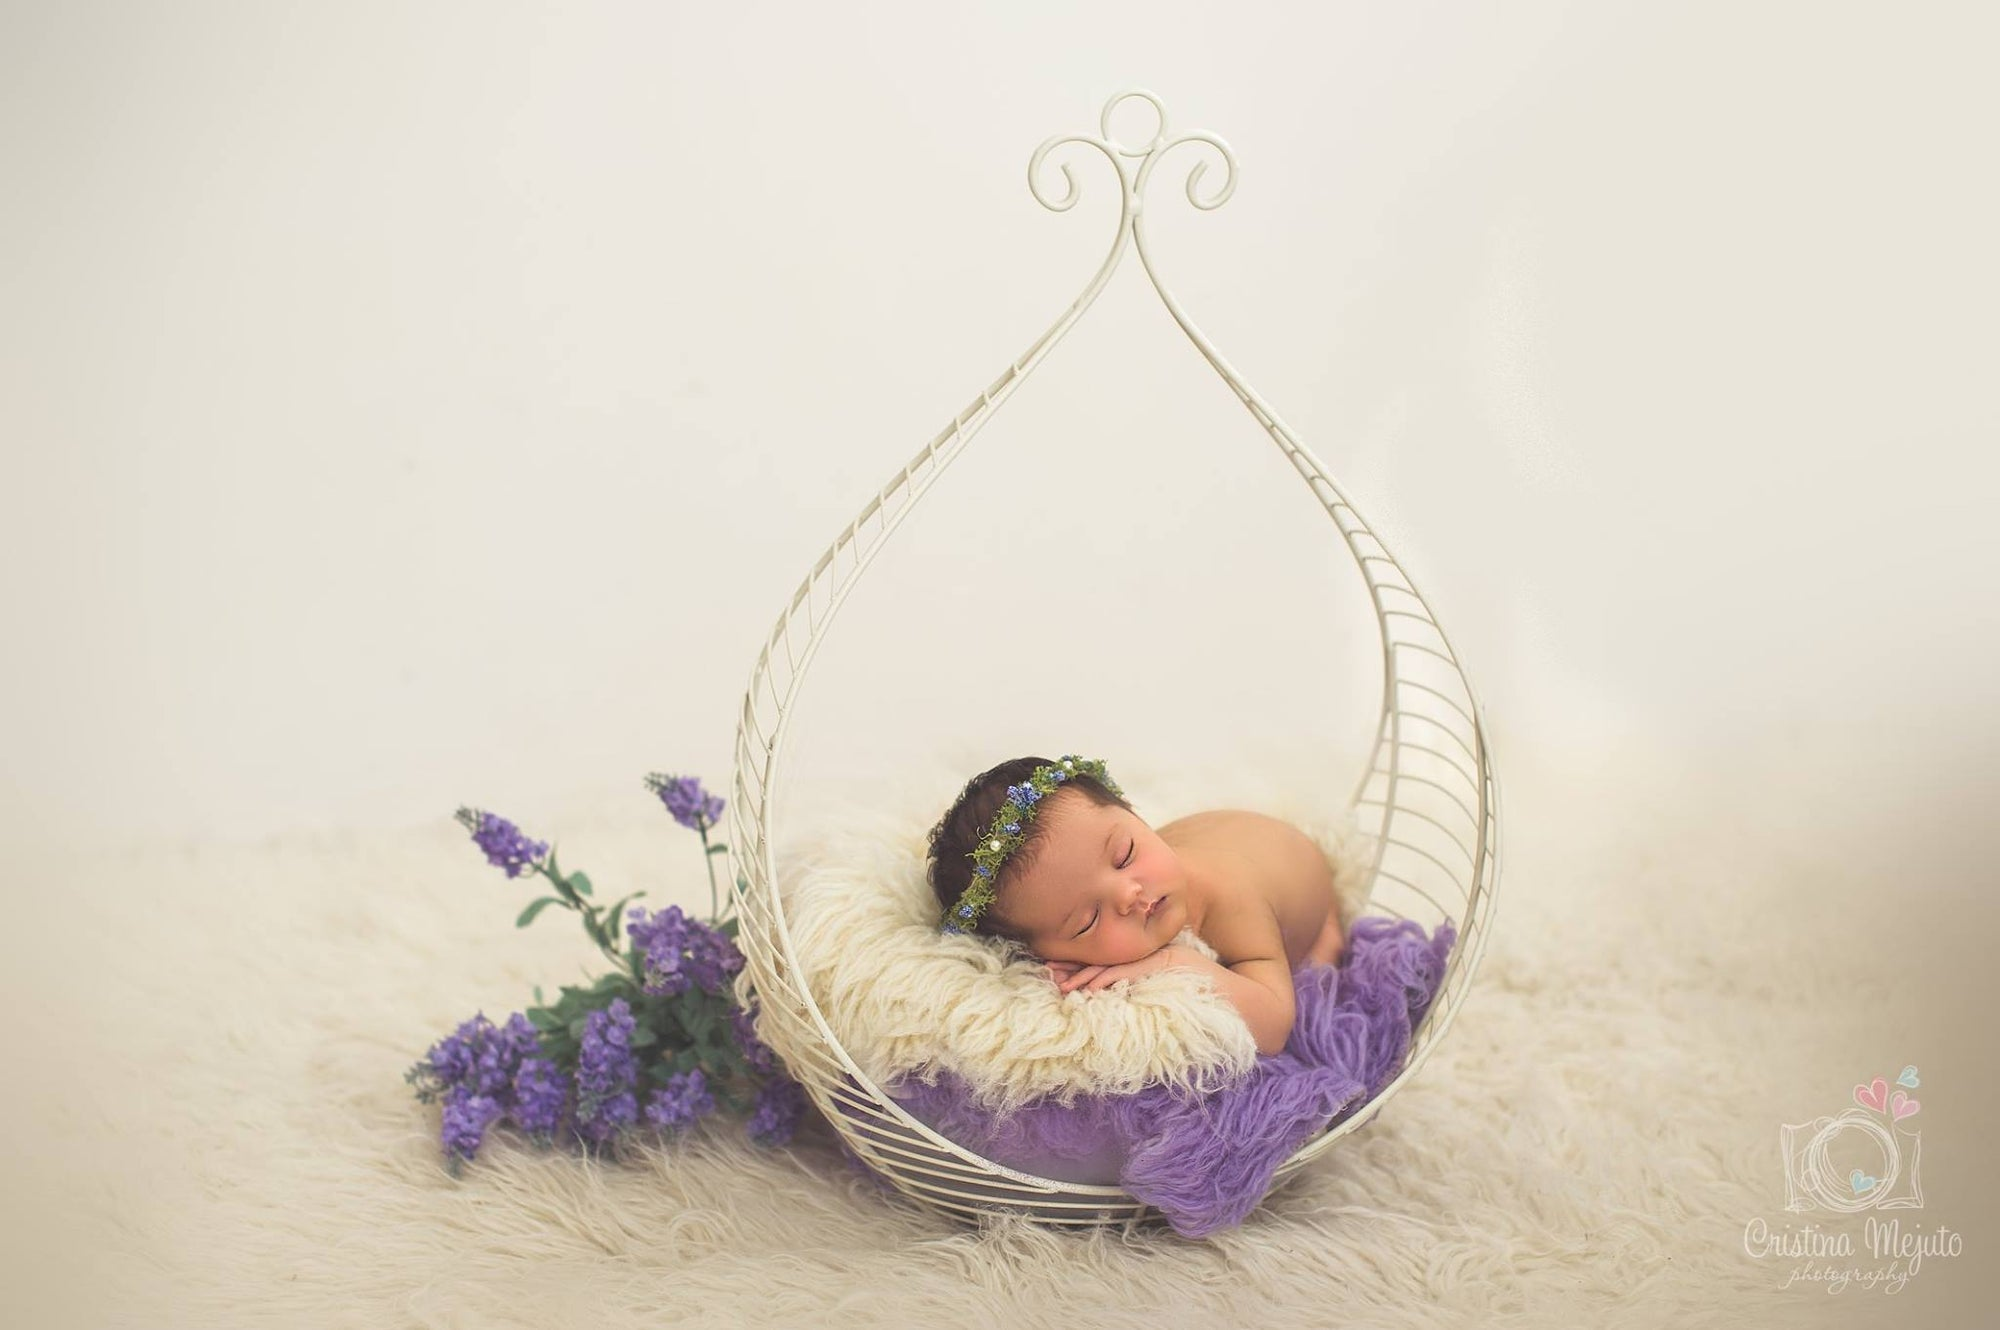 Vintage Bed - Hanging Drop - White-Newborn Photography Props